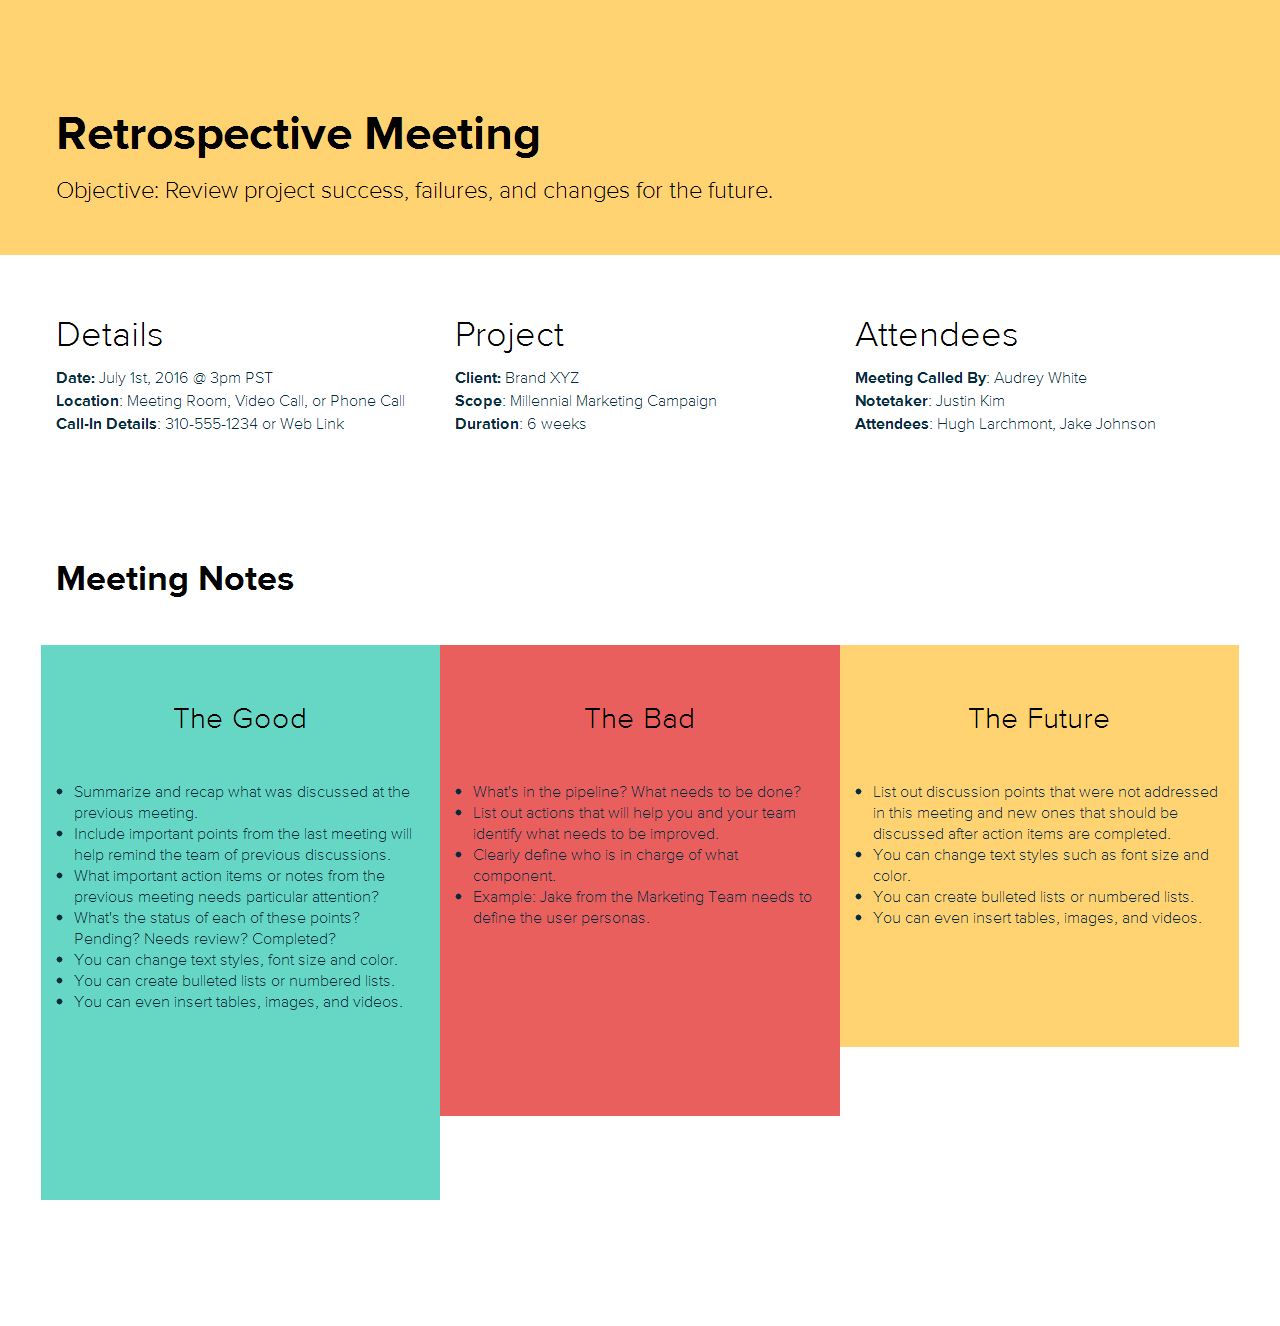 Retro Meeting Agenda sample by Xtensio